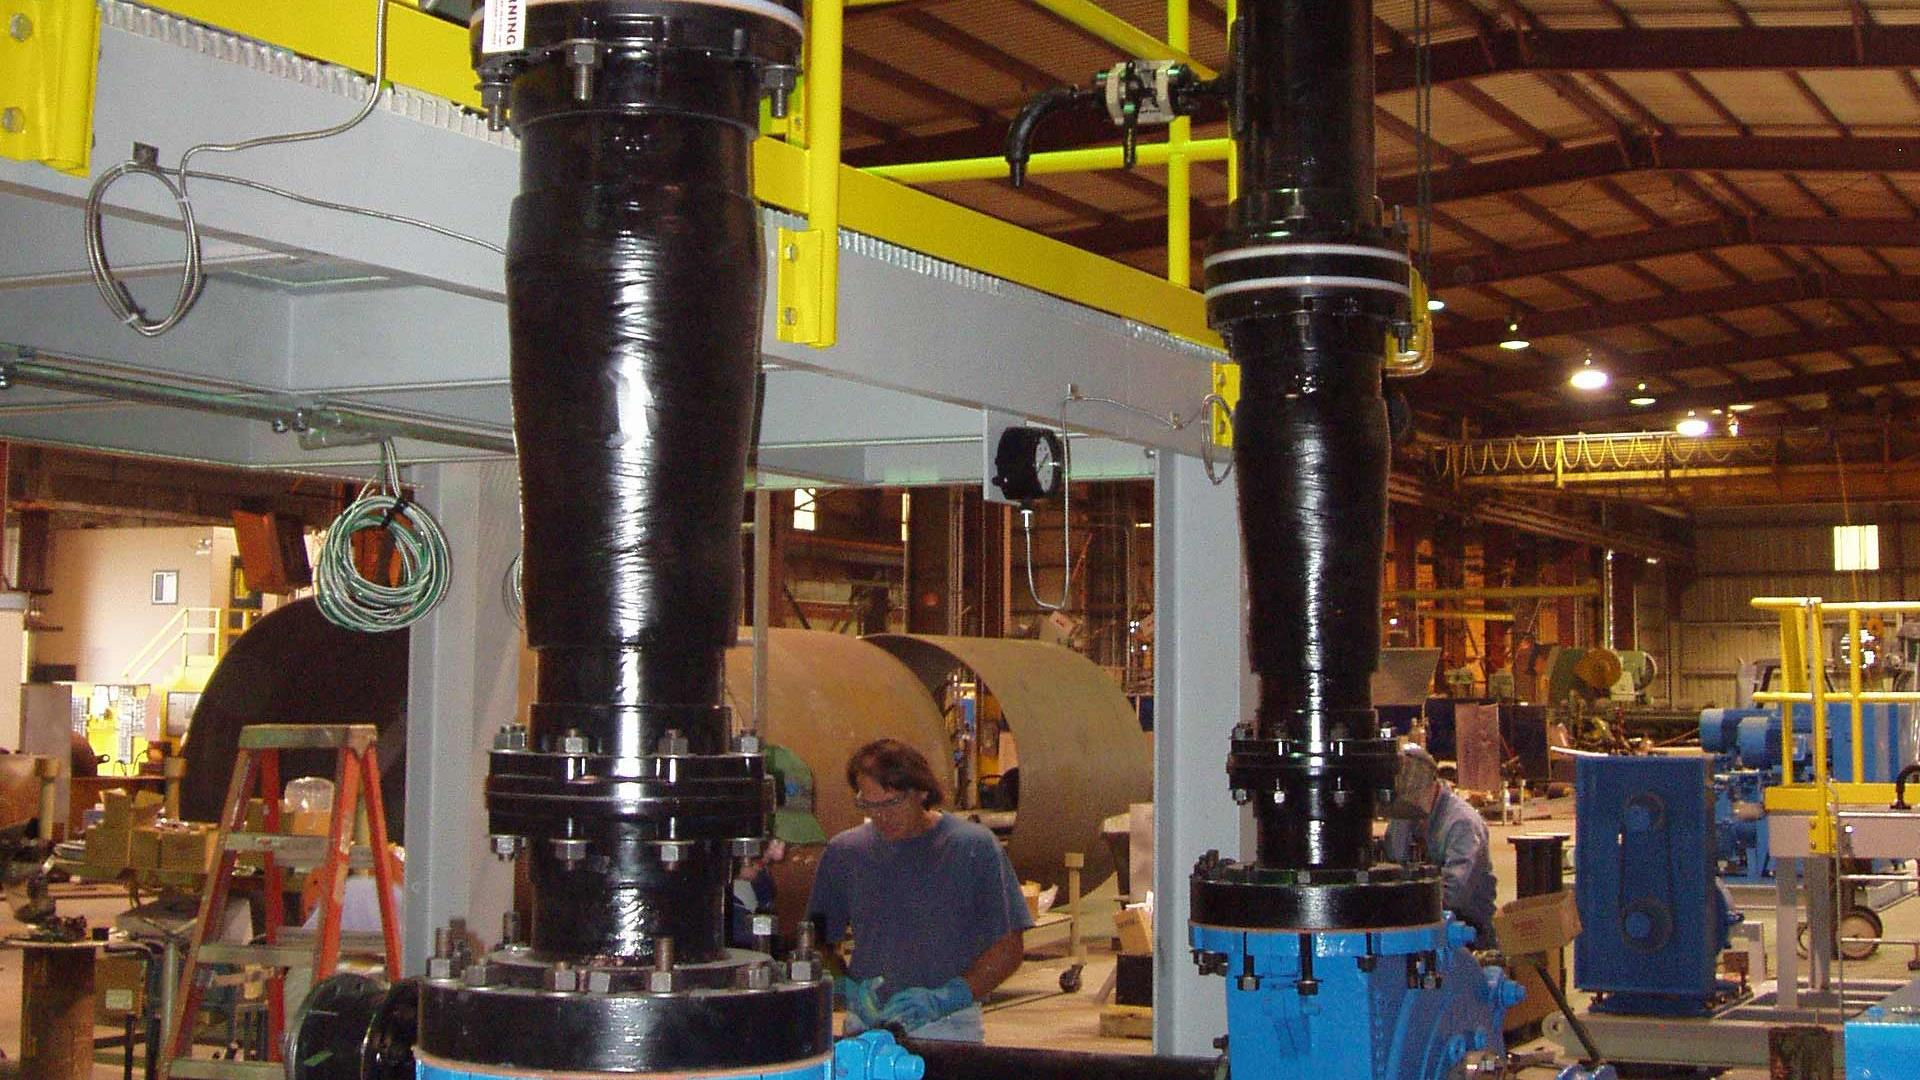 Two black Silver Streak Fiberglass Pipes in a manufacturing facility